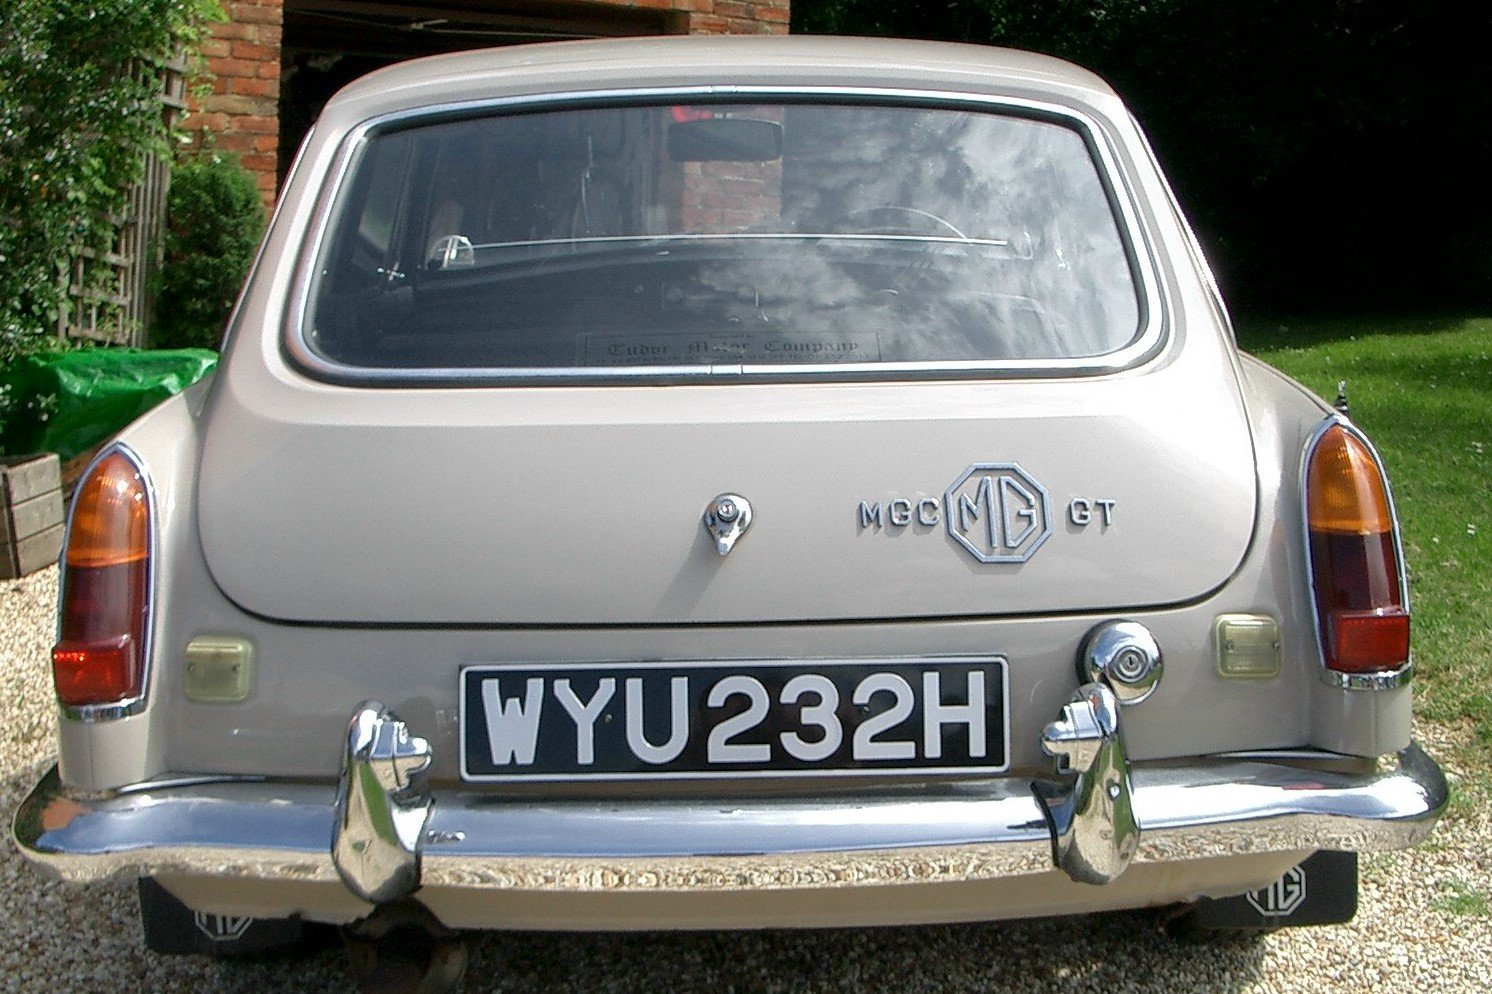 1969 MGC GT Automatic For Sale (picture 3 of 6)